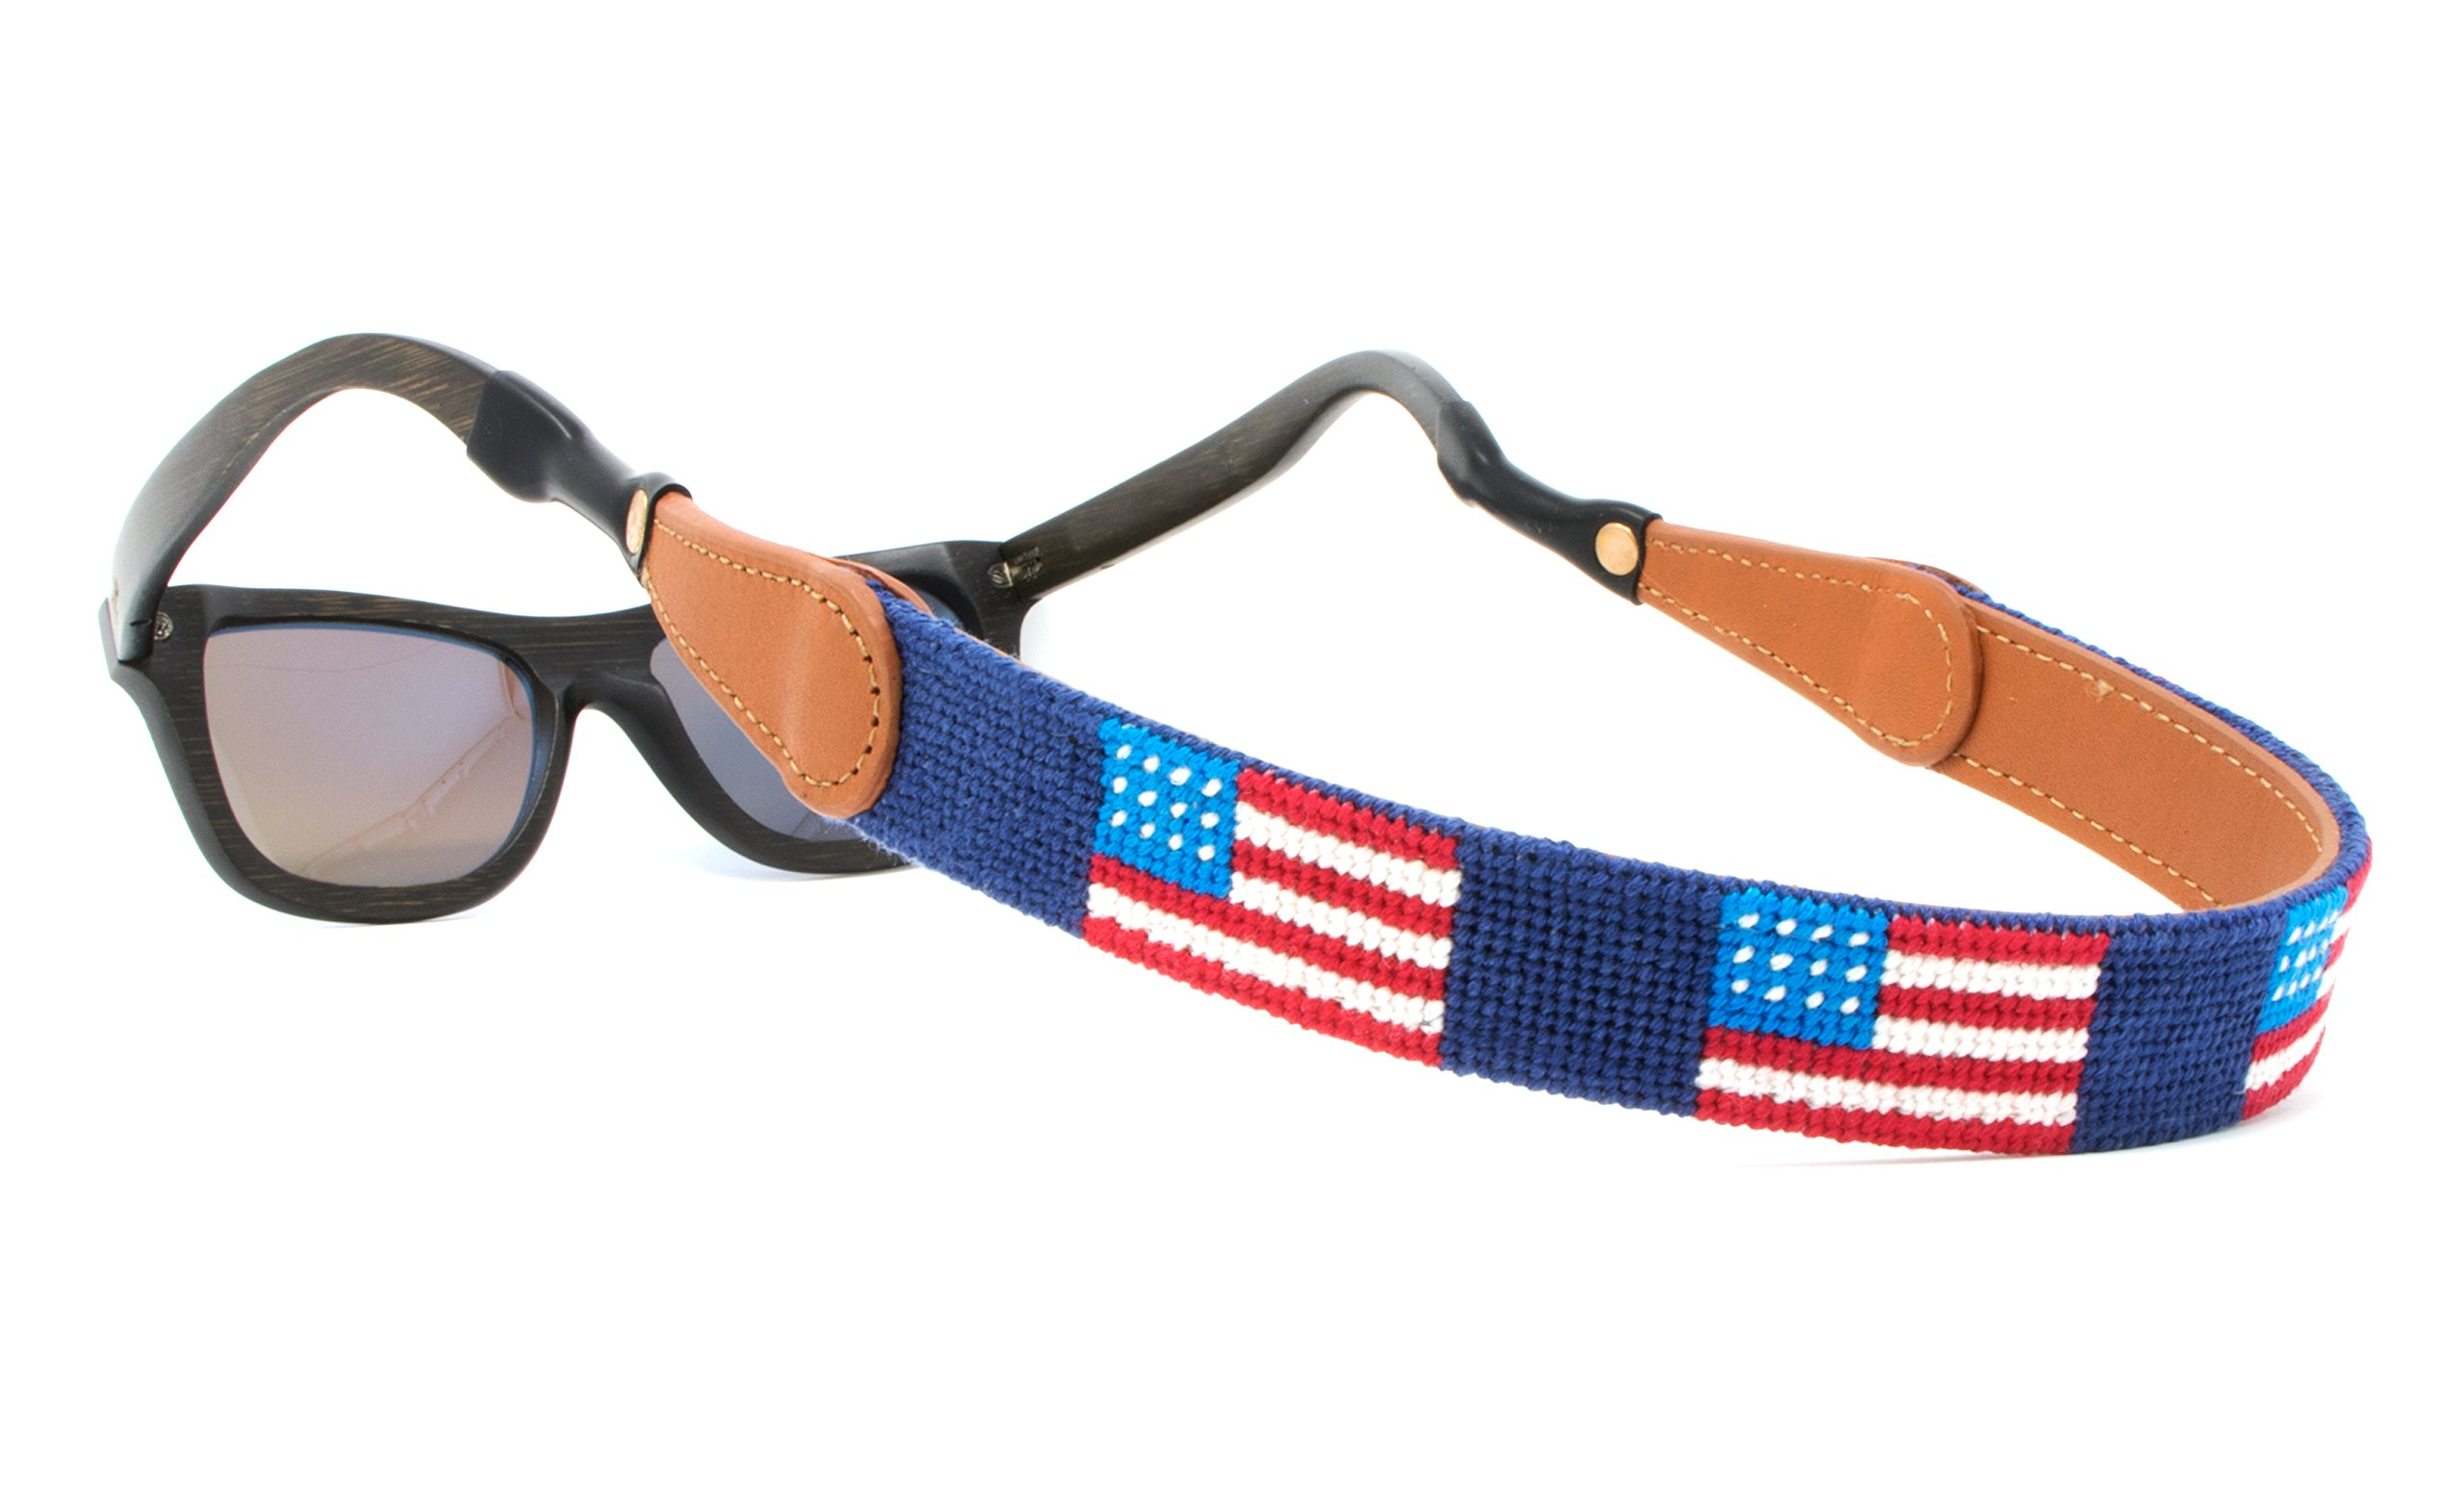 Needlepoint Sunglass Strap Sunglass Retainer by Huck Venture (American Flag)